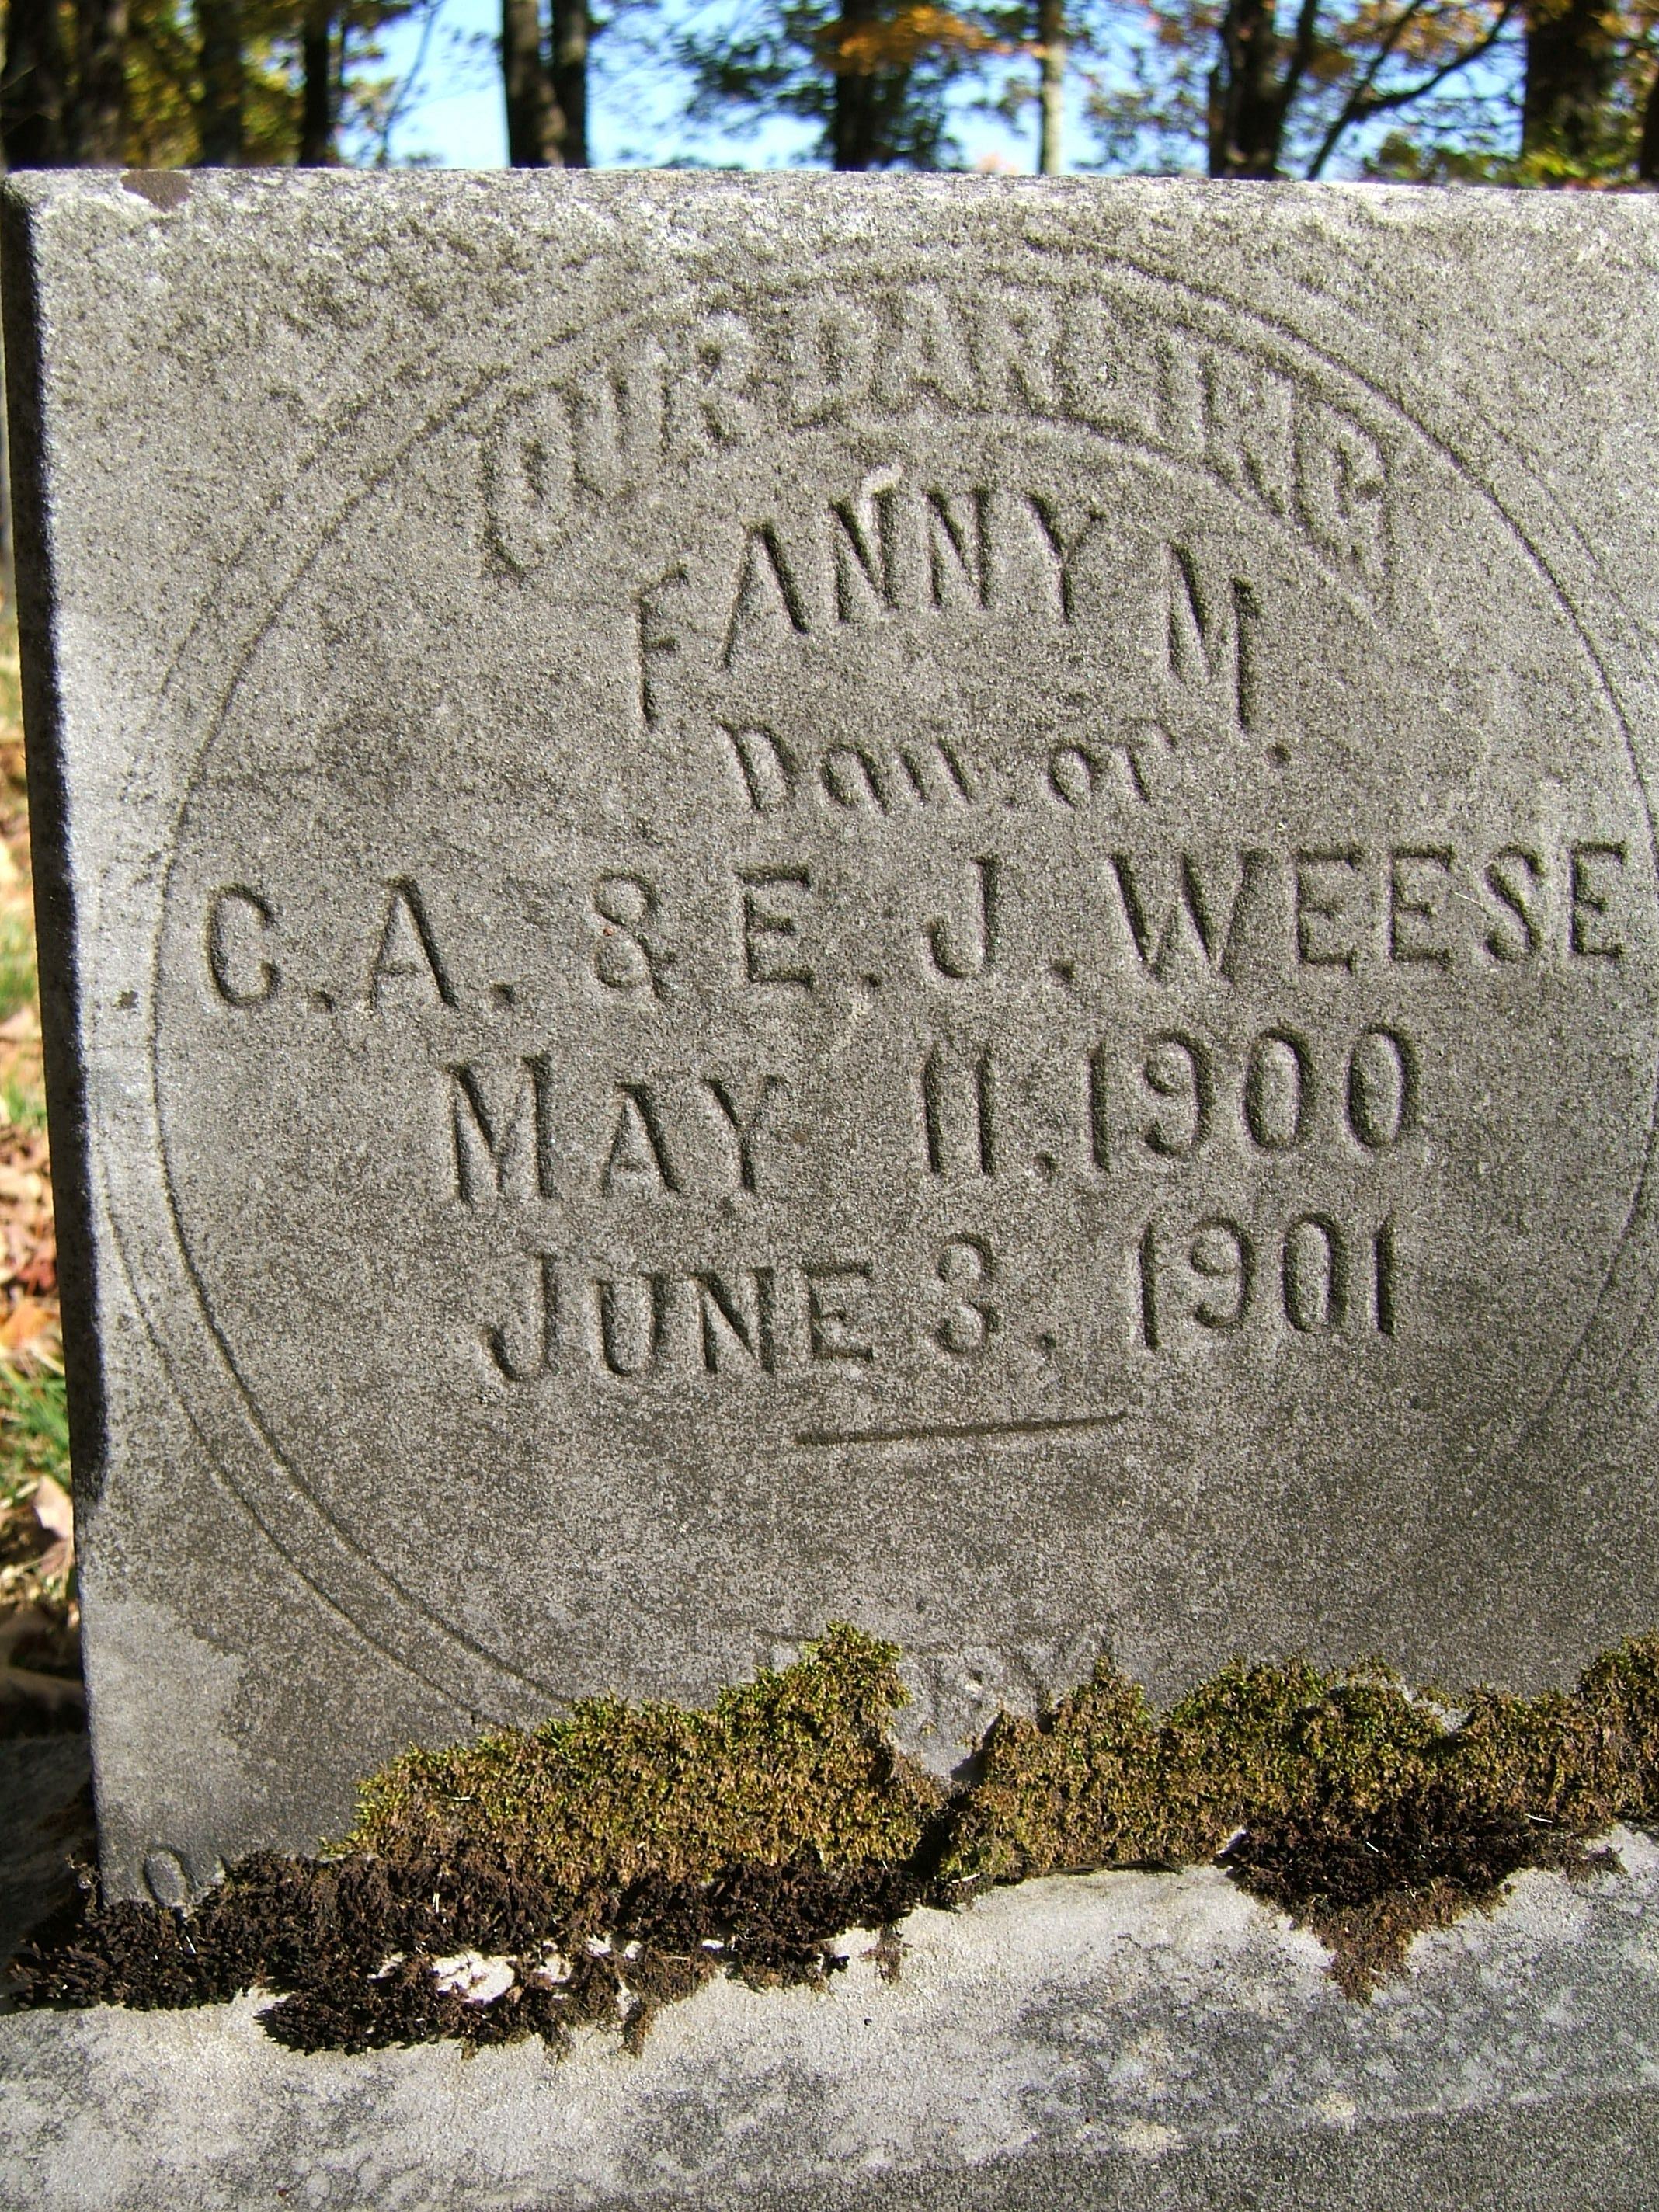 Fannie m weese 1900 1901 find a grave memorial